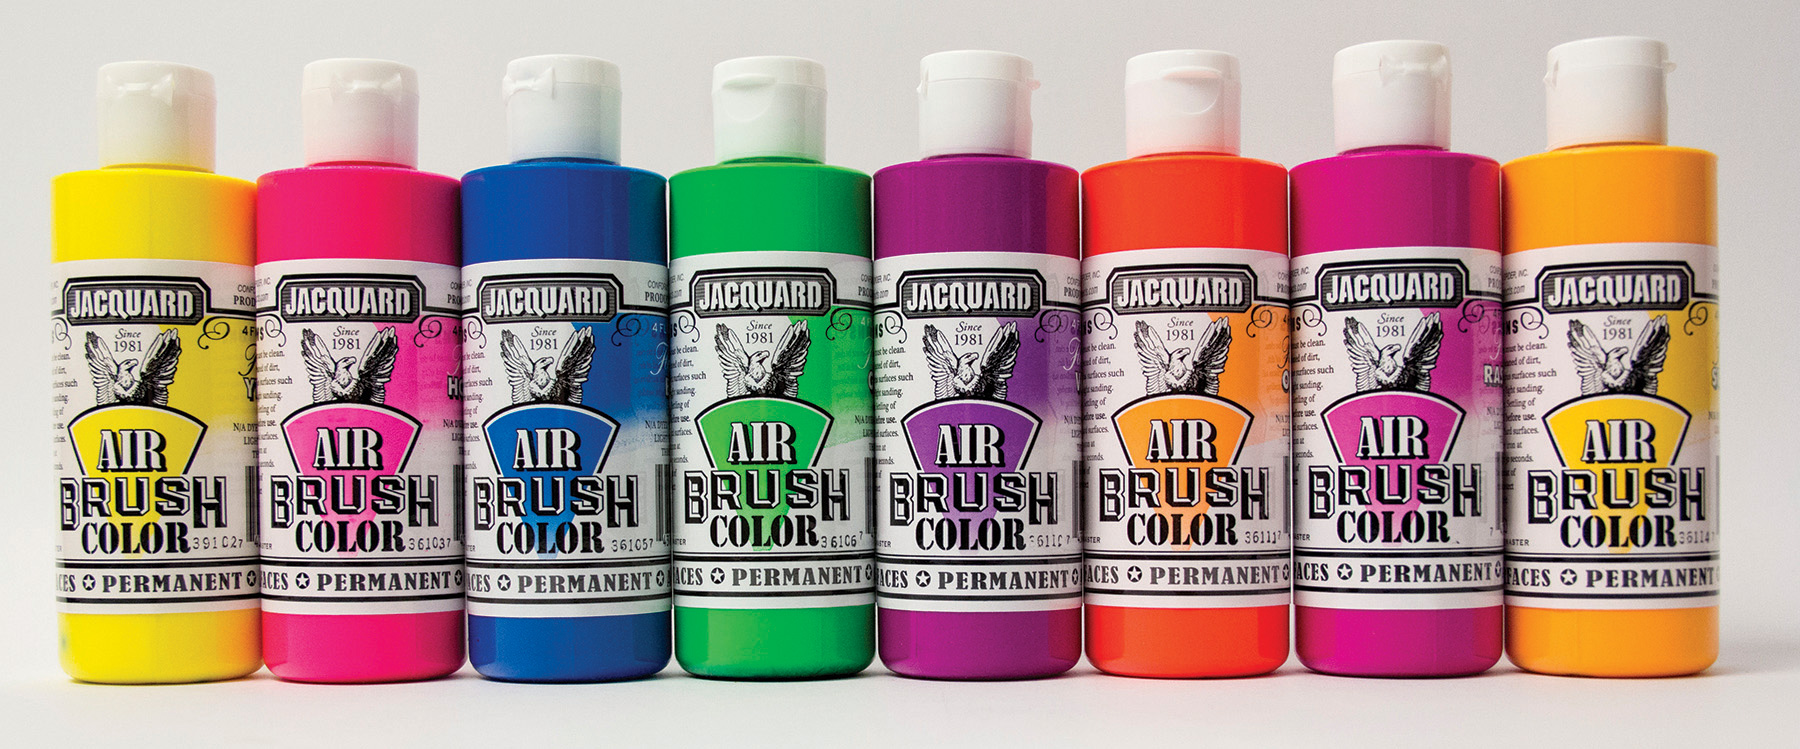 Jacquard Fluorescent Airbrush Color